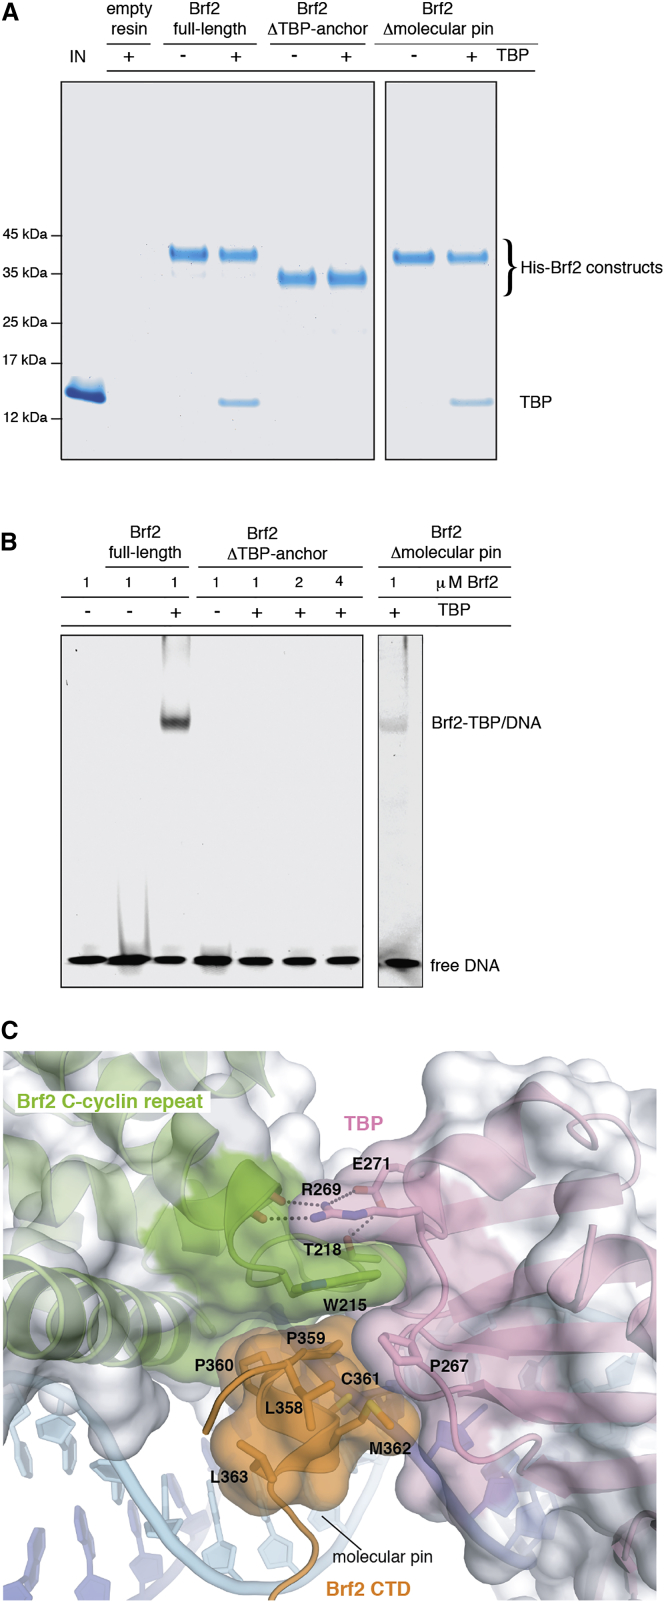 The <t>Brf2</t> Molecular Pin (A) The Brf2 TBP anchor domain but not the molecular pin is essential for Brf2-TBP interaction in absence of the DNA, as shown by a pull-down assay. (B) The Brf2 TBP anchor domain and the molecular pin are essential for the formation of a Brf2-TBP/DNA complex, as shown in an EMSA. (C) Close-up view of the Brf2 molecular pin at the interface between the Brf2 C-cyclin repeat, TBP, and the DNA. See also Figures S3 and S7 .